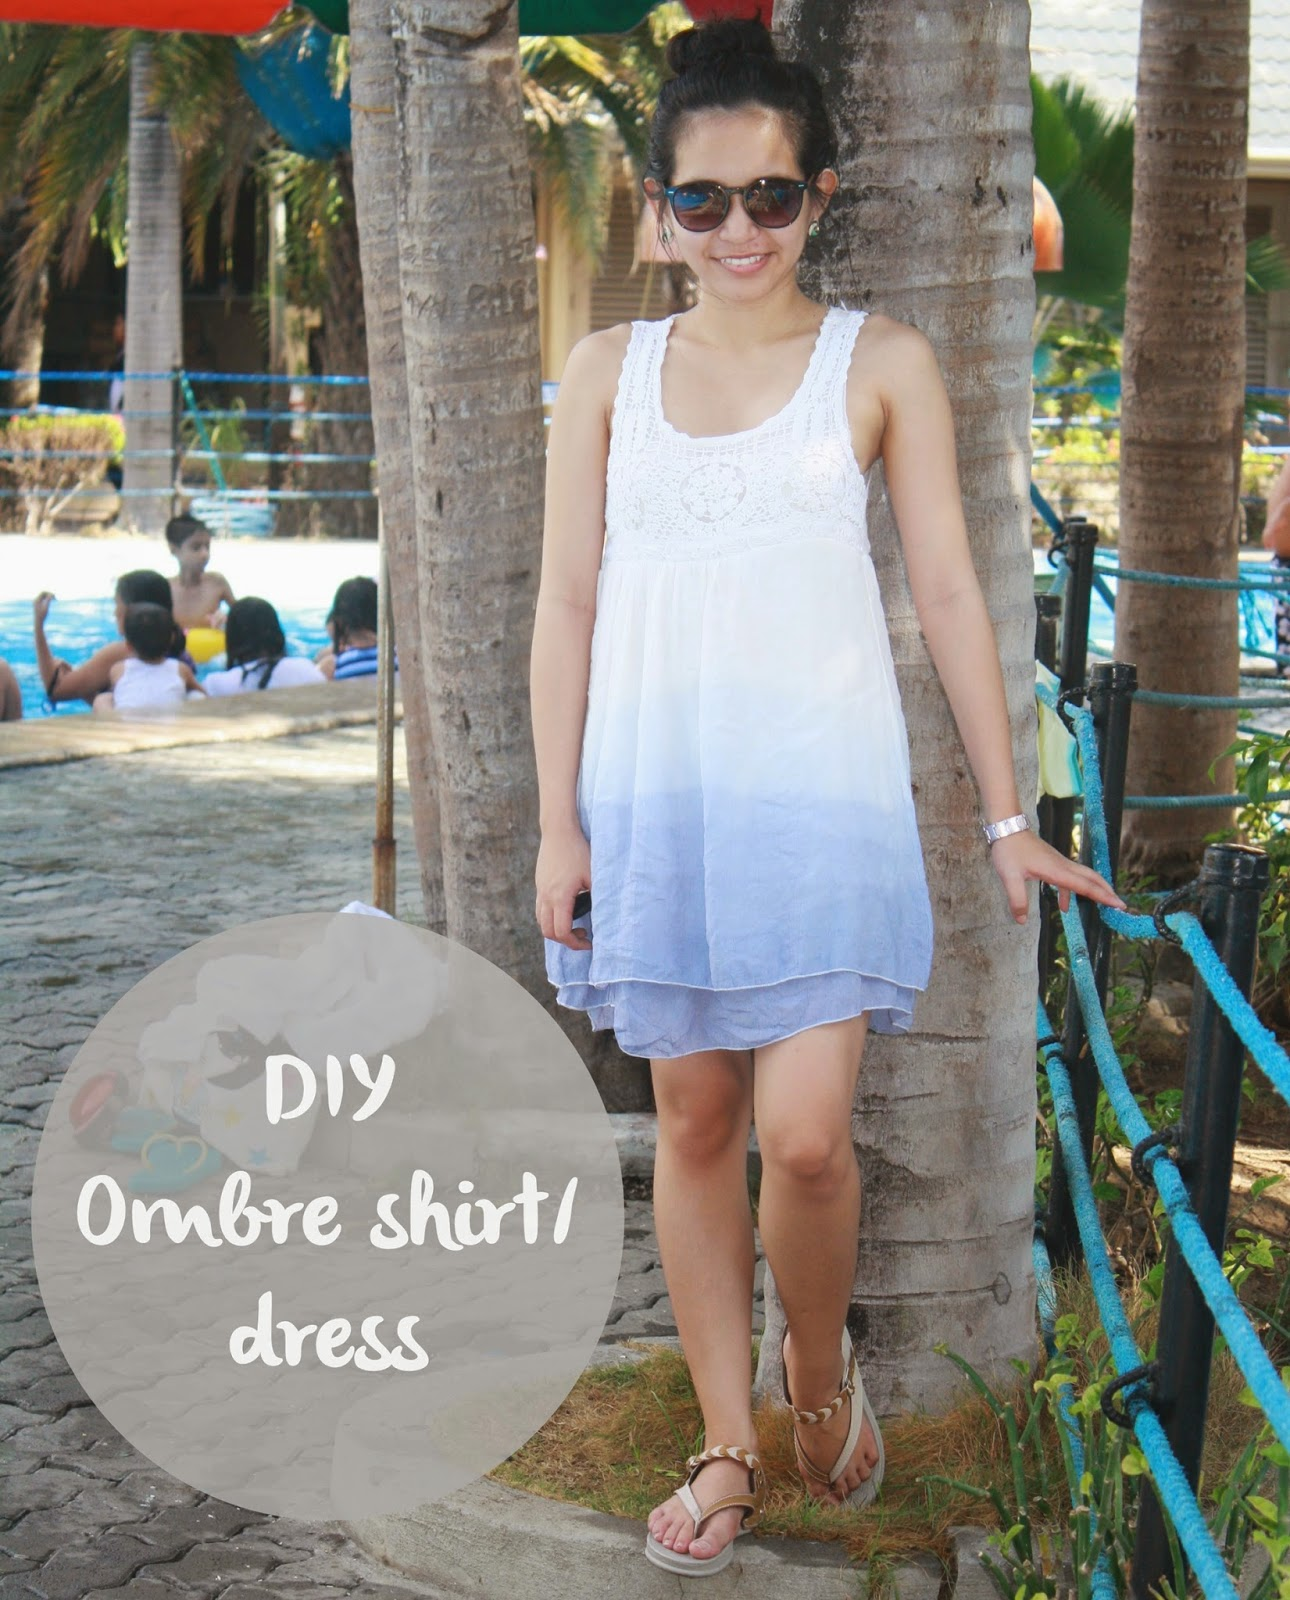 http://bloggingmicah.blogspot.com/2014/05/diy-ombre-shirt_13.html